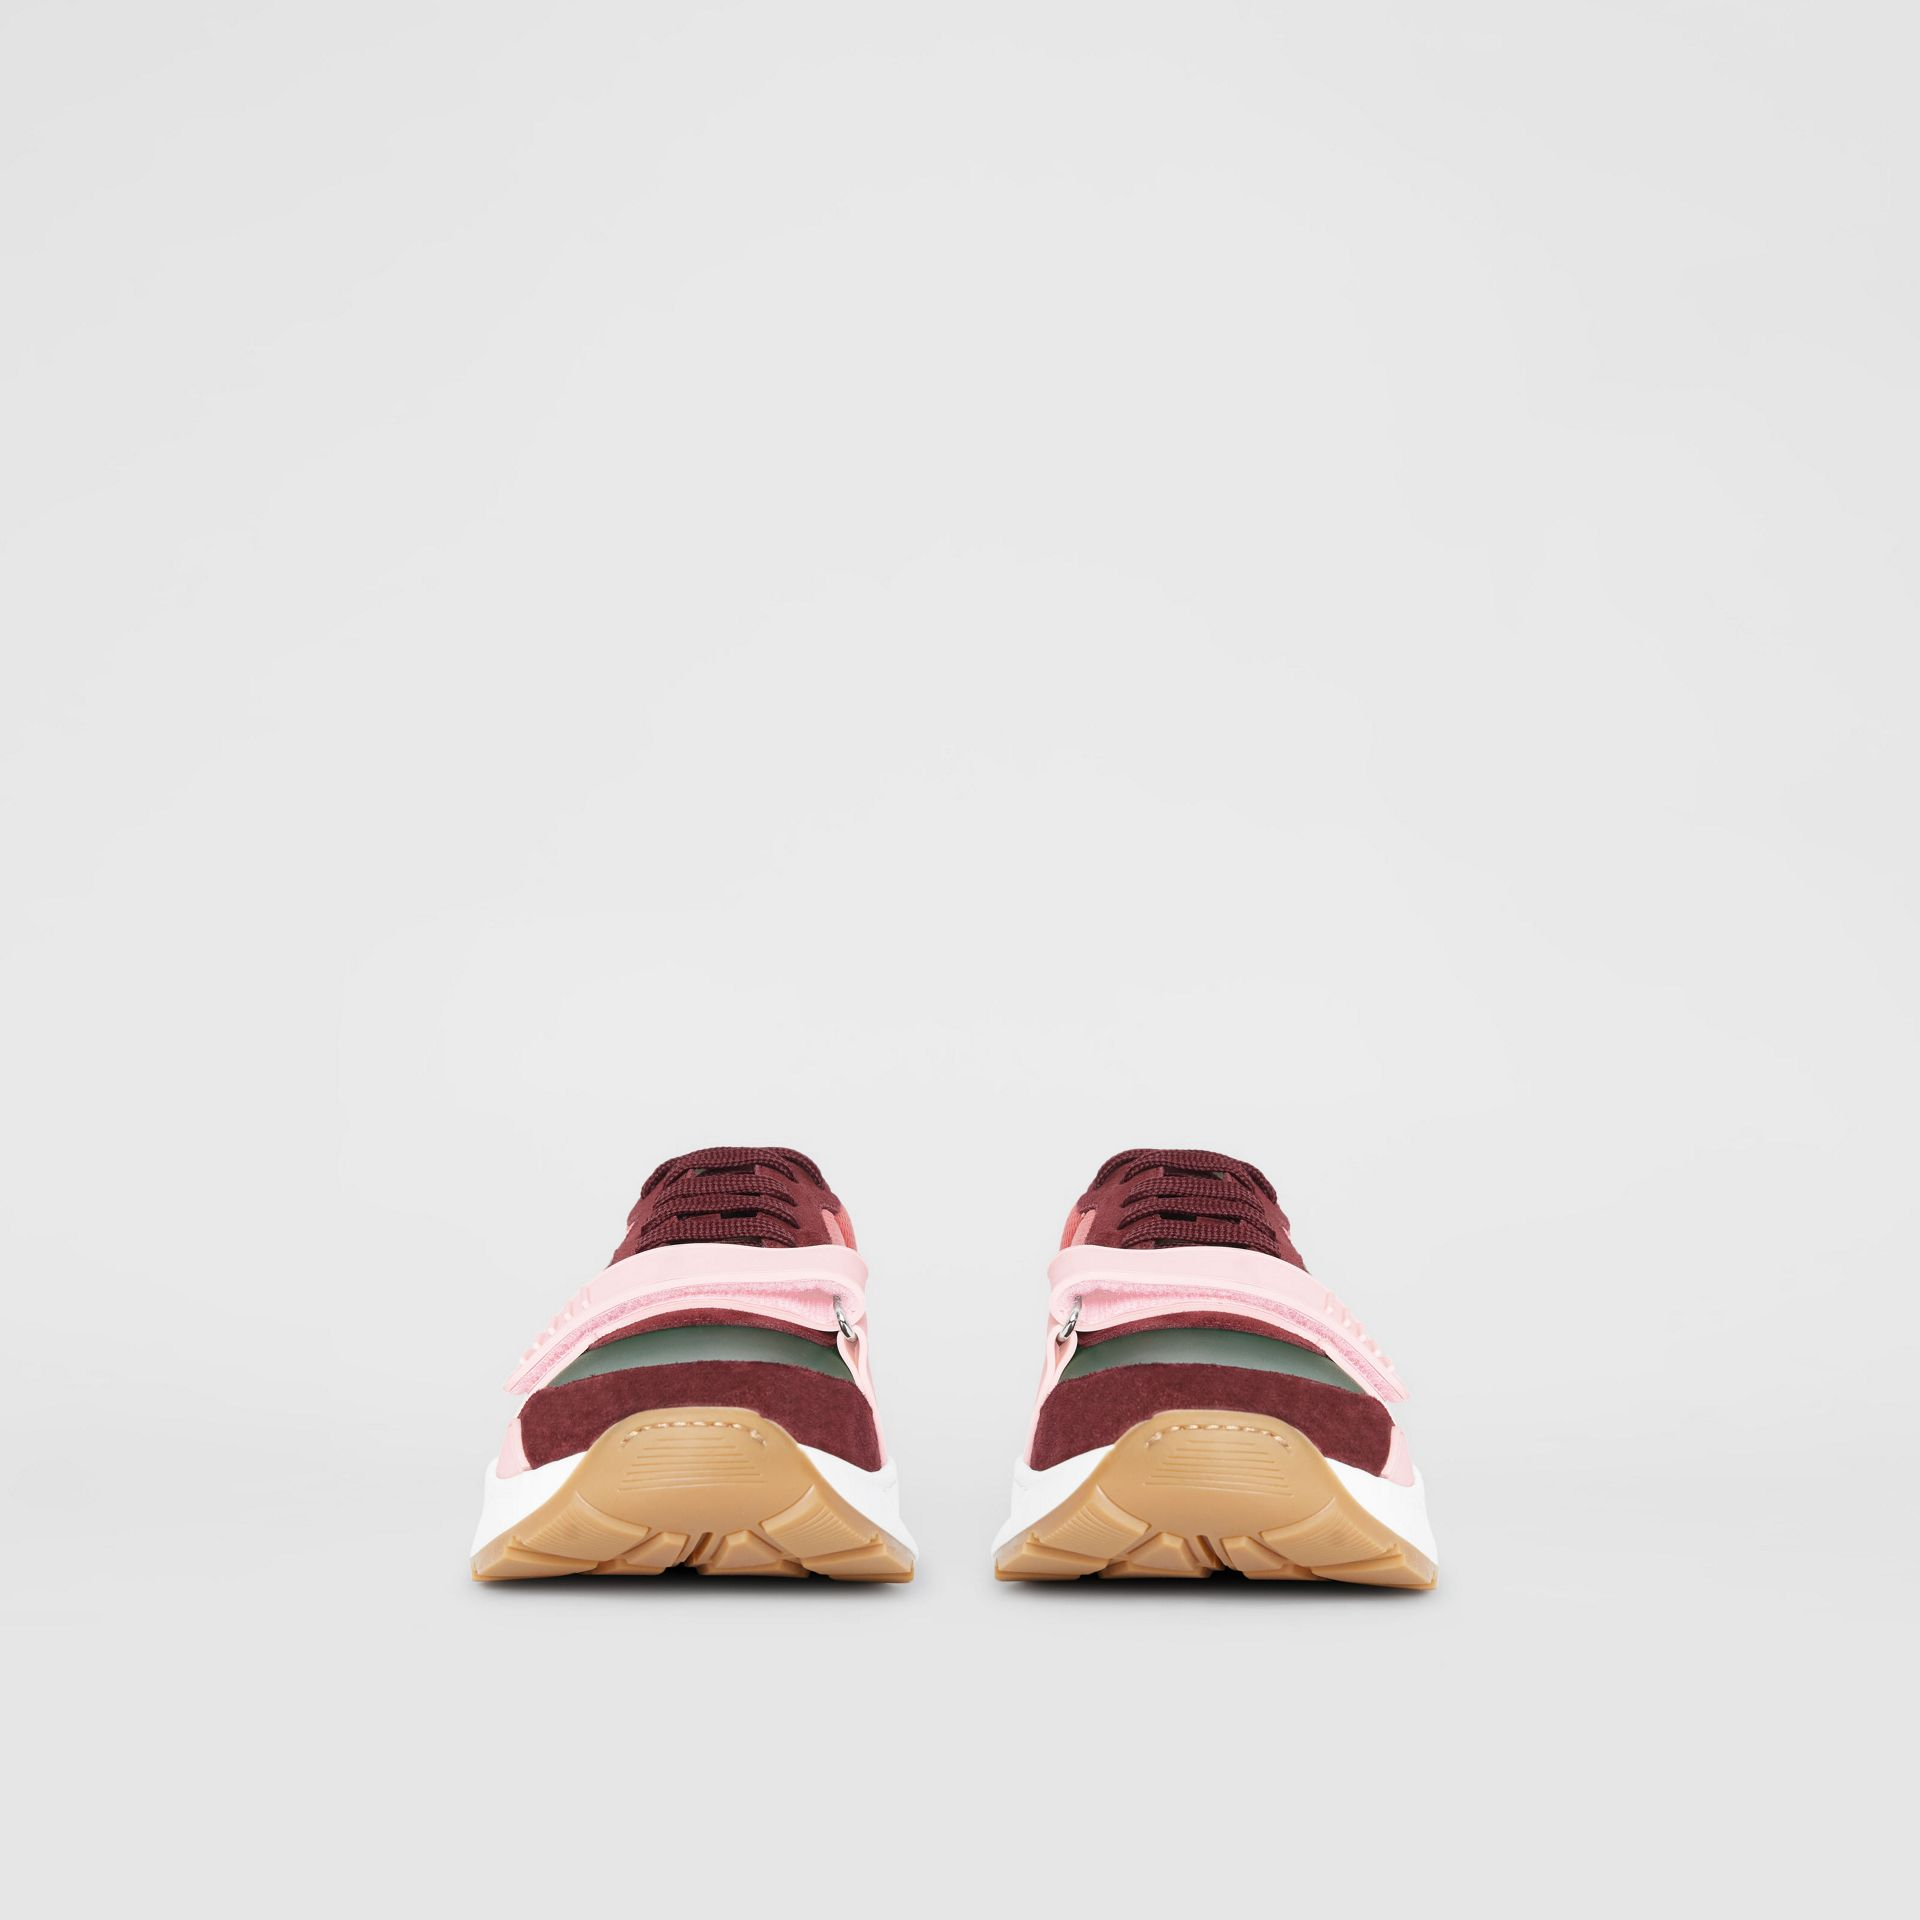 Colour Block Suede and Neoprene Sneakers in Bordeaux/khaki - Men | Burberry Canada - gallery image 3